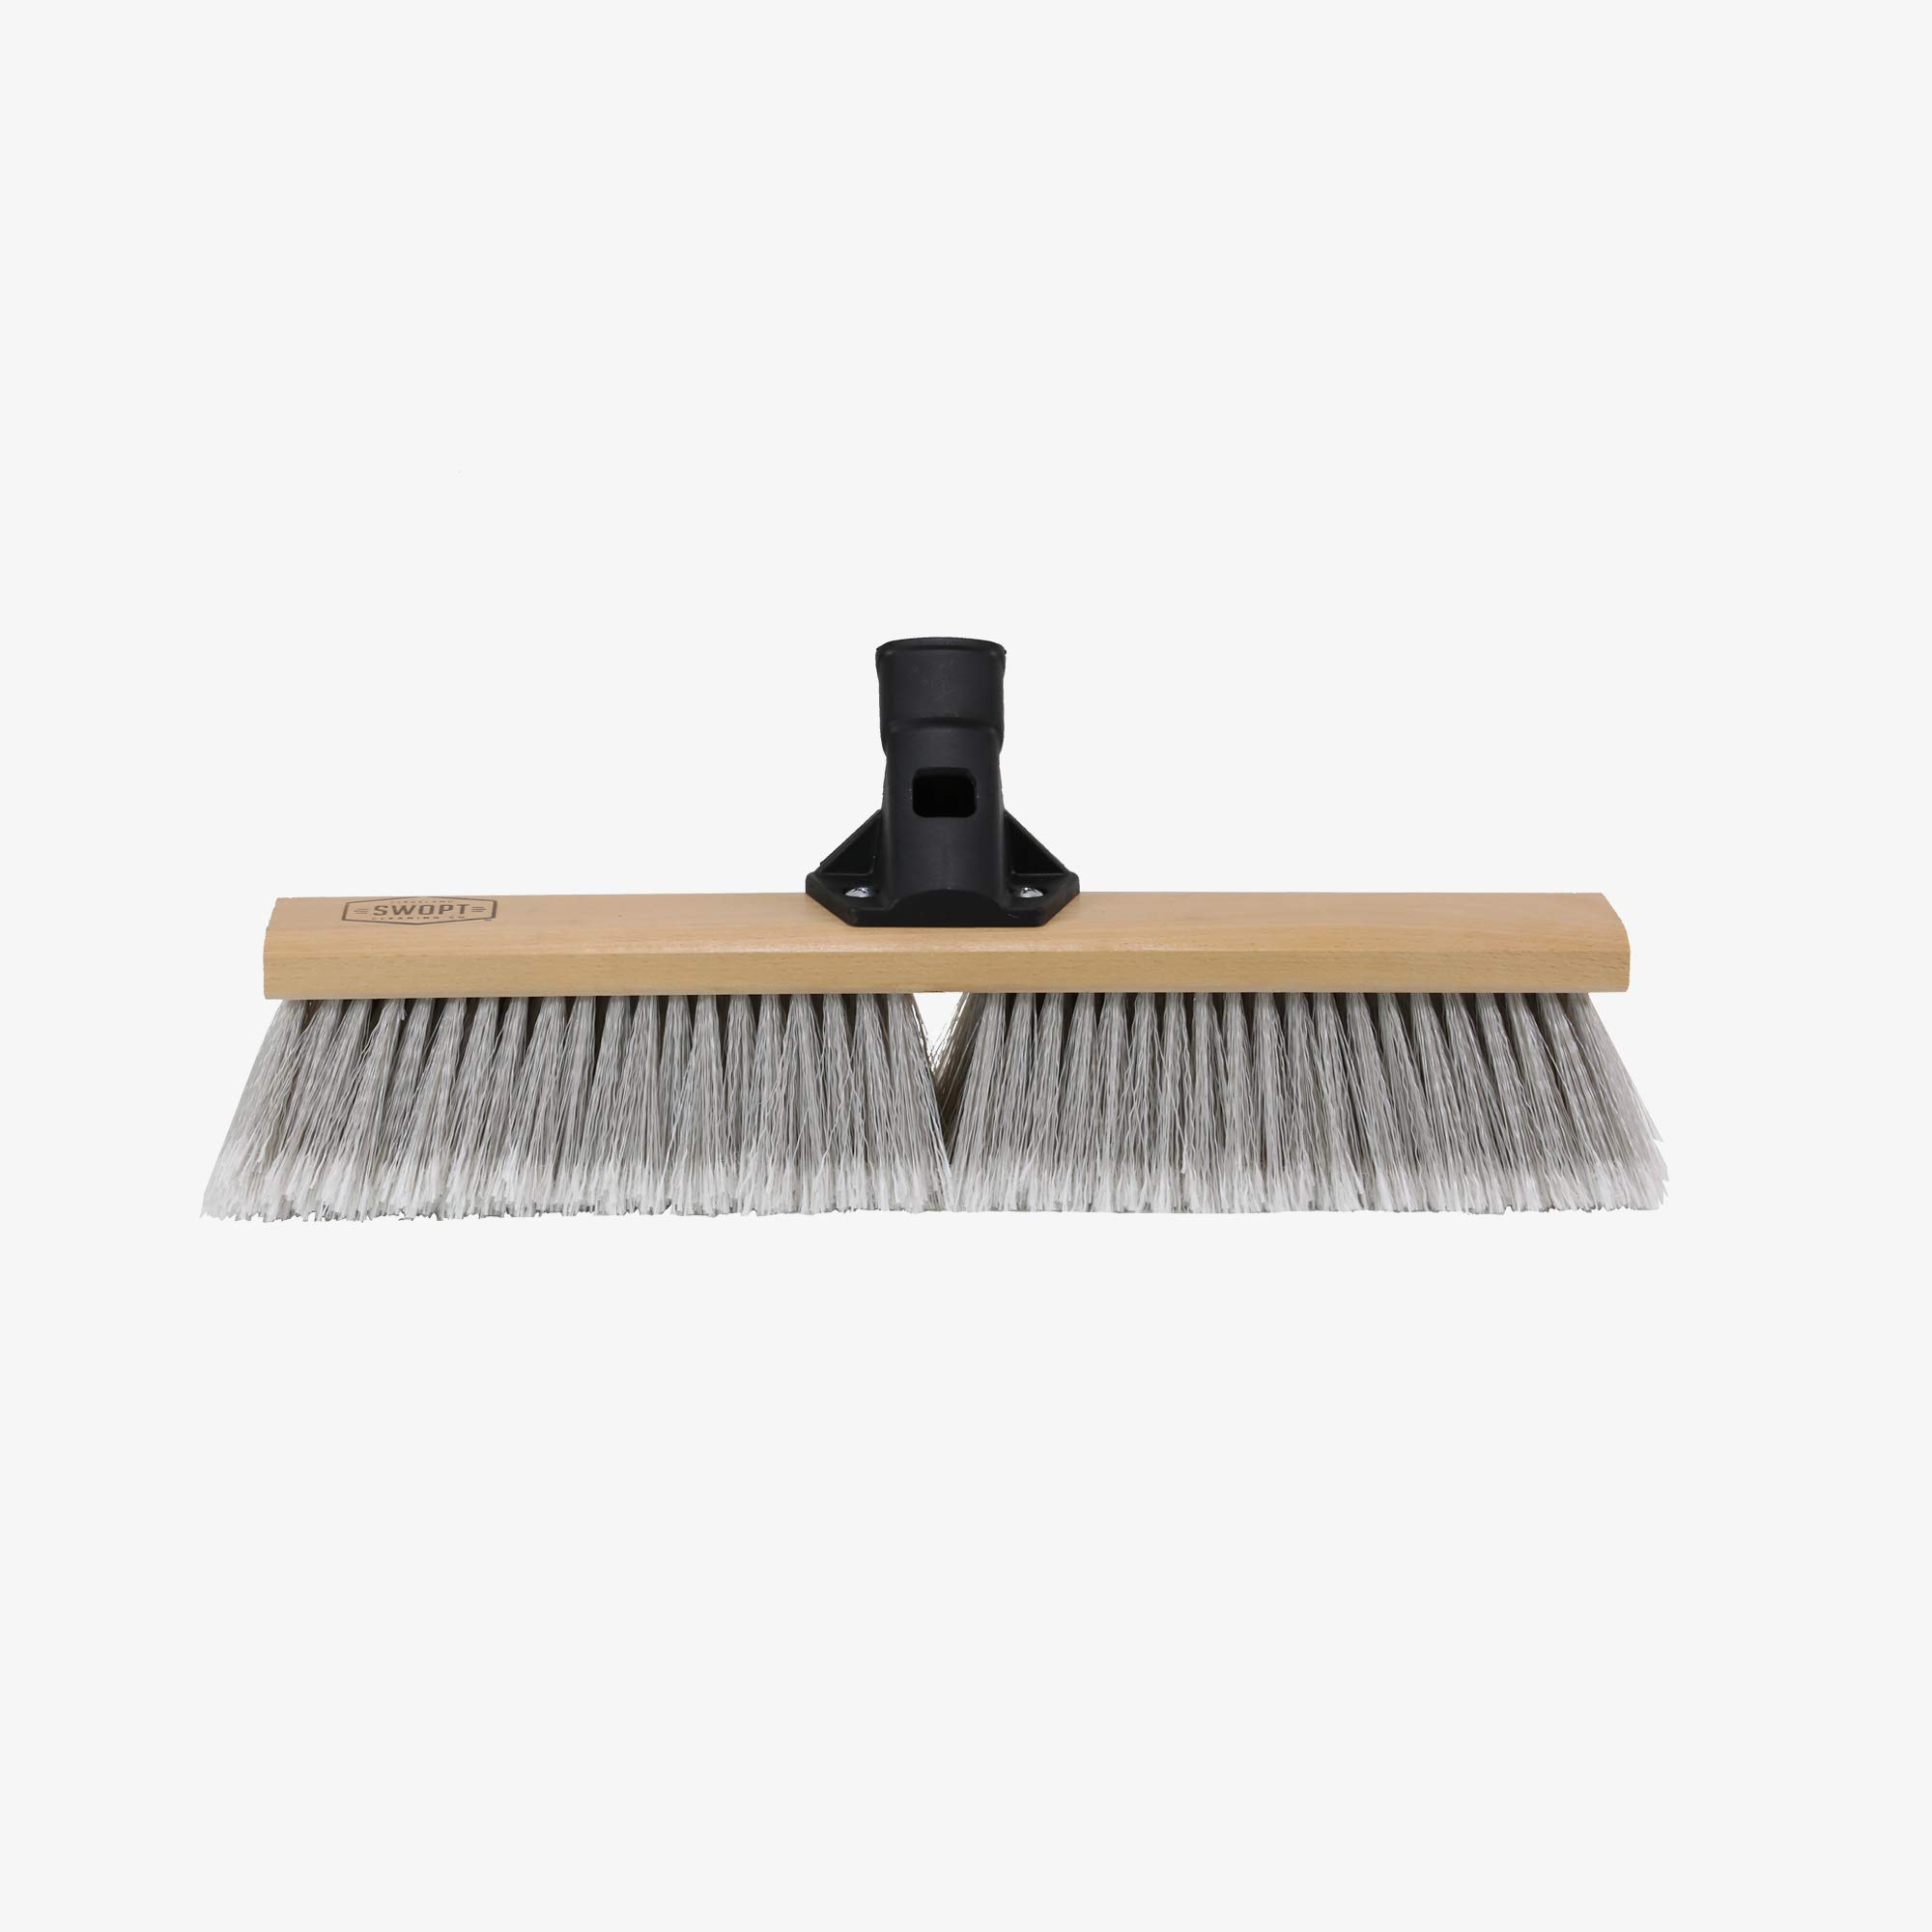 Swopt 5115C4 SWOPT 18 Premium Smooth Surface Push Broom Head, Push Broom for Indoor Use, Picking up Finer Particles